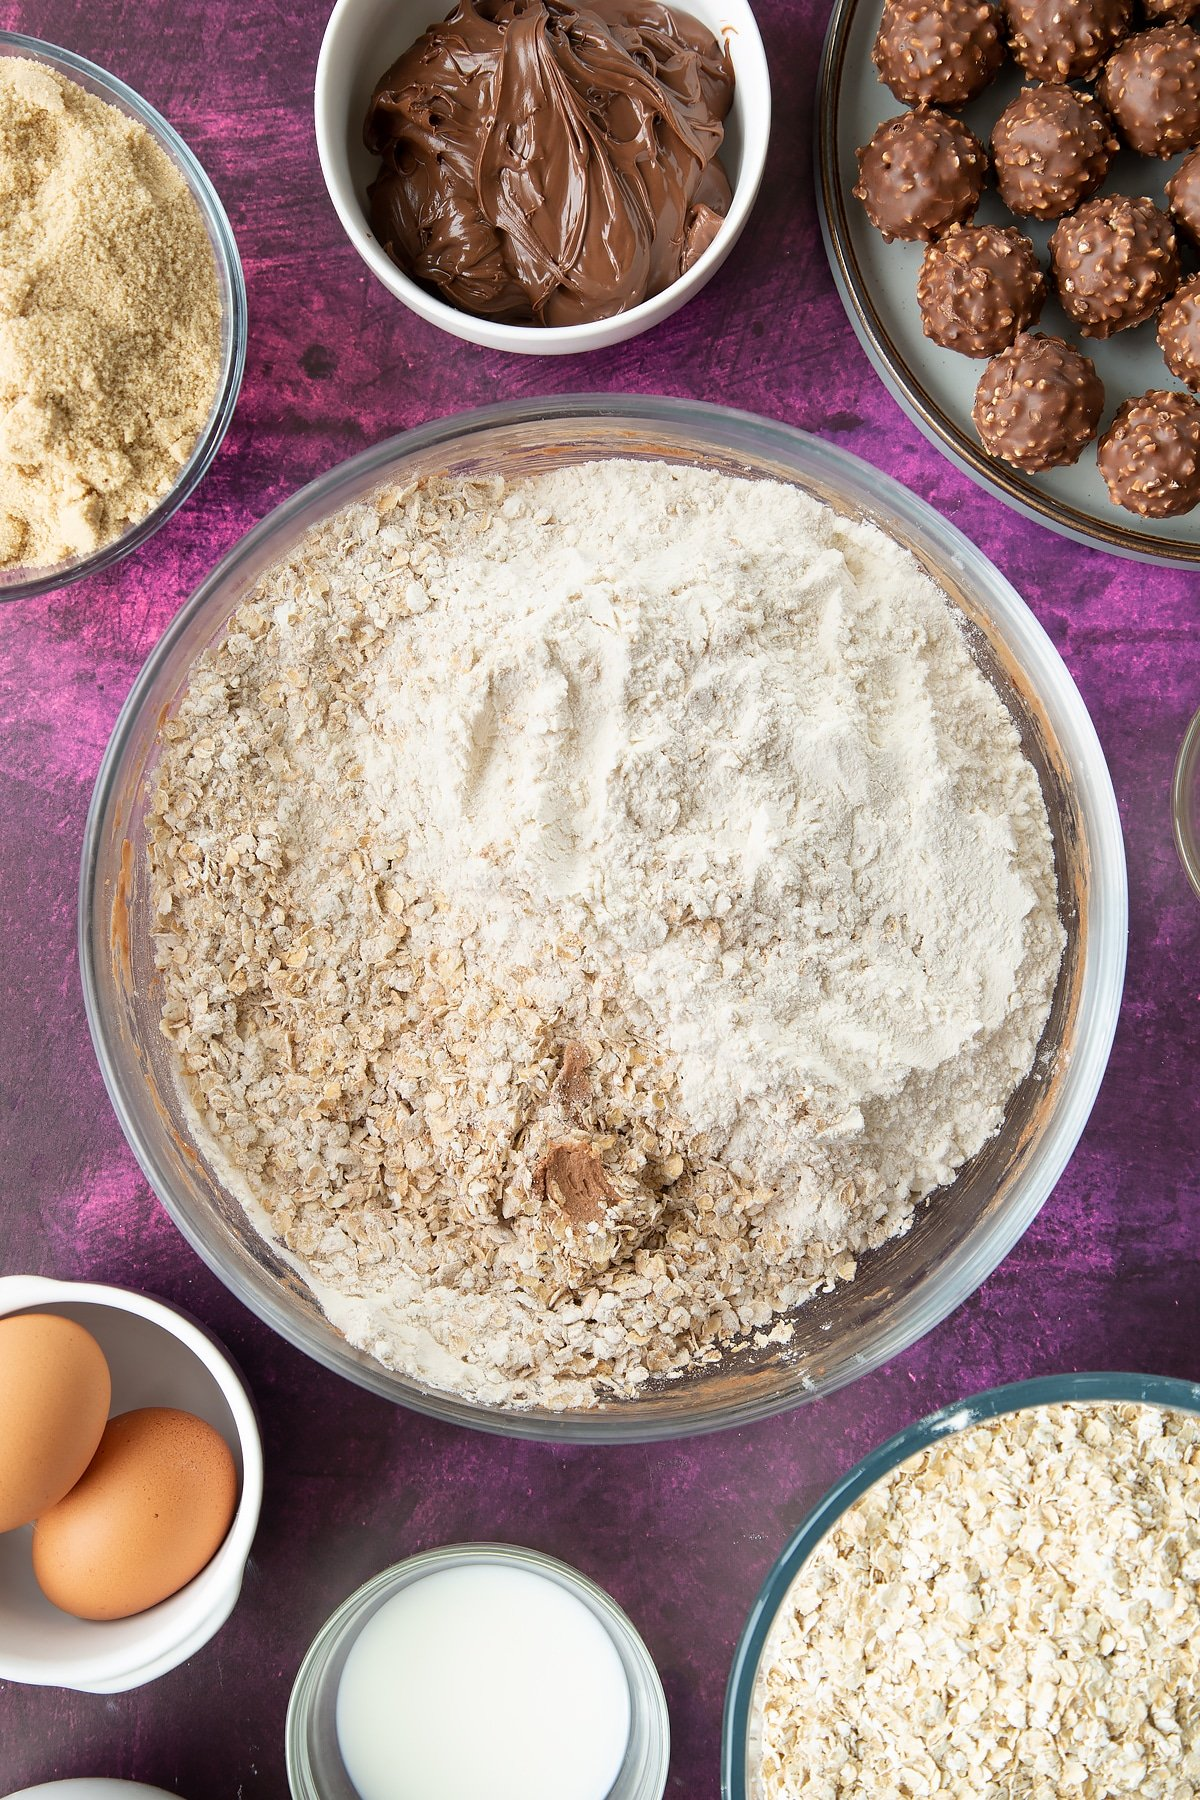 Soft brown sugar, Nutella, butter, eggs and milk beaten together in a large mixing bowl with flour and oats on top. Ingredients to make Ferrero Rocher cookies surround the bowl.